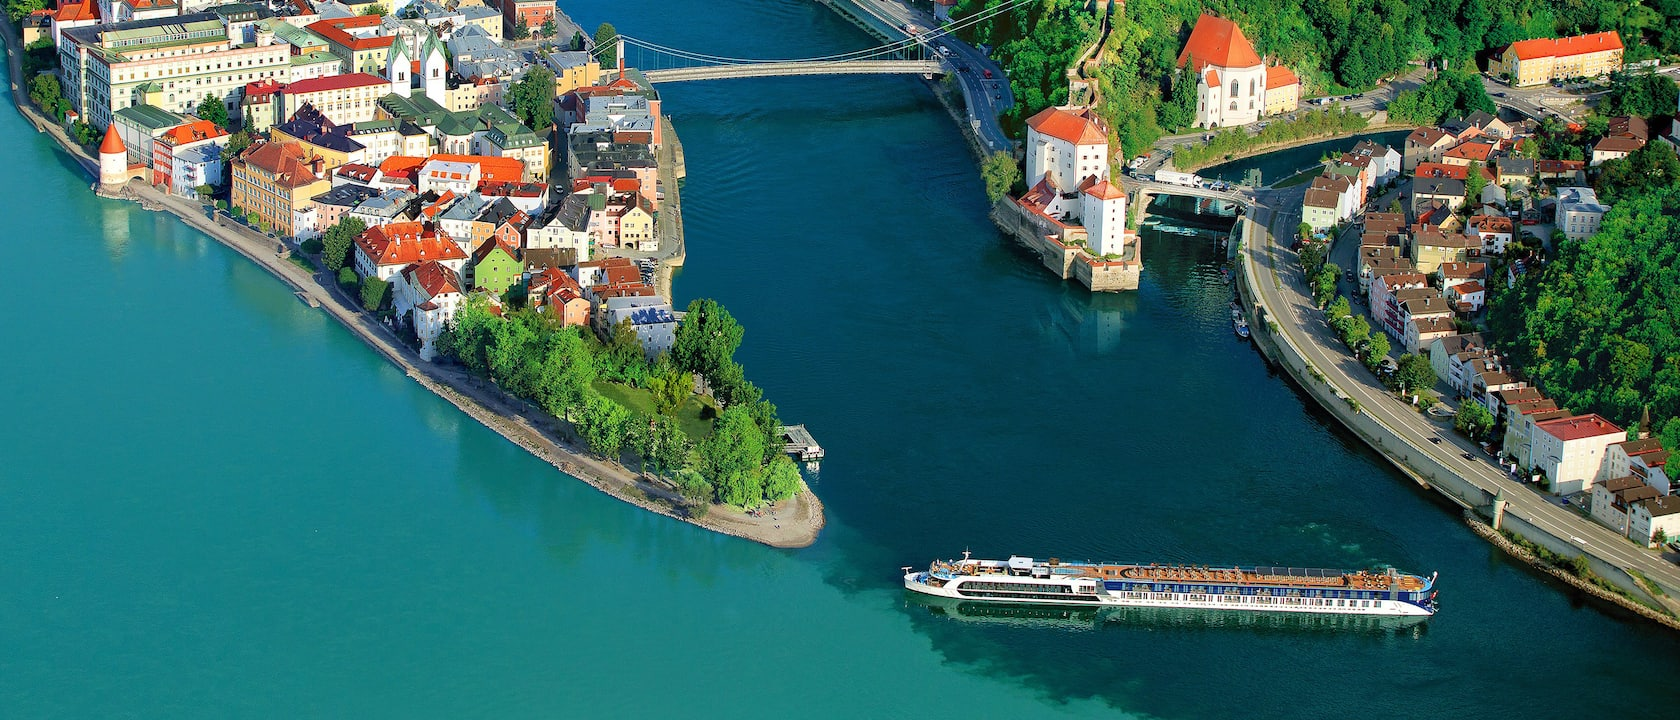 Danube River Cruise | Adventures by Disney